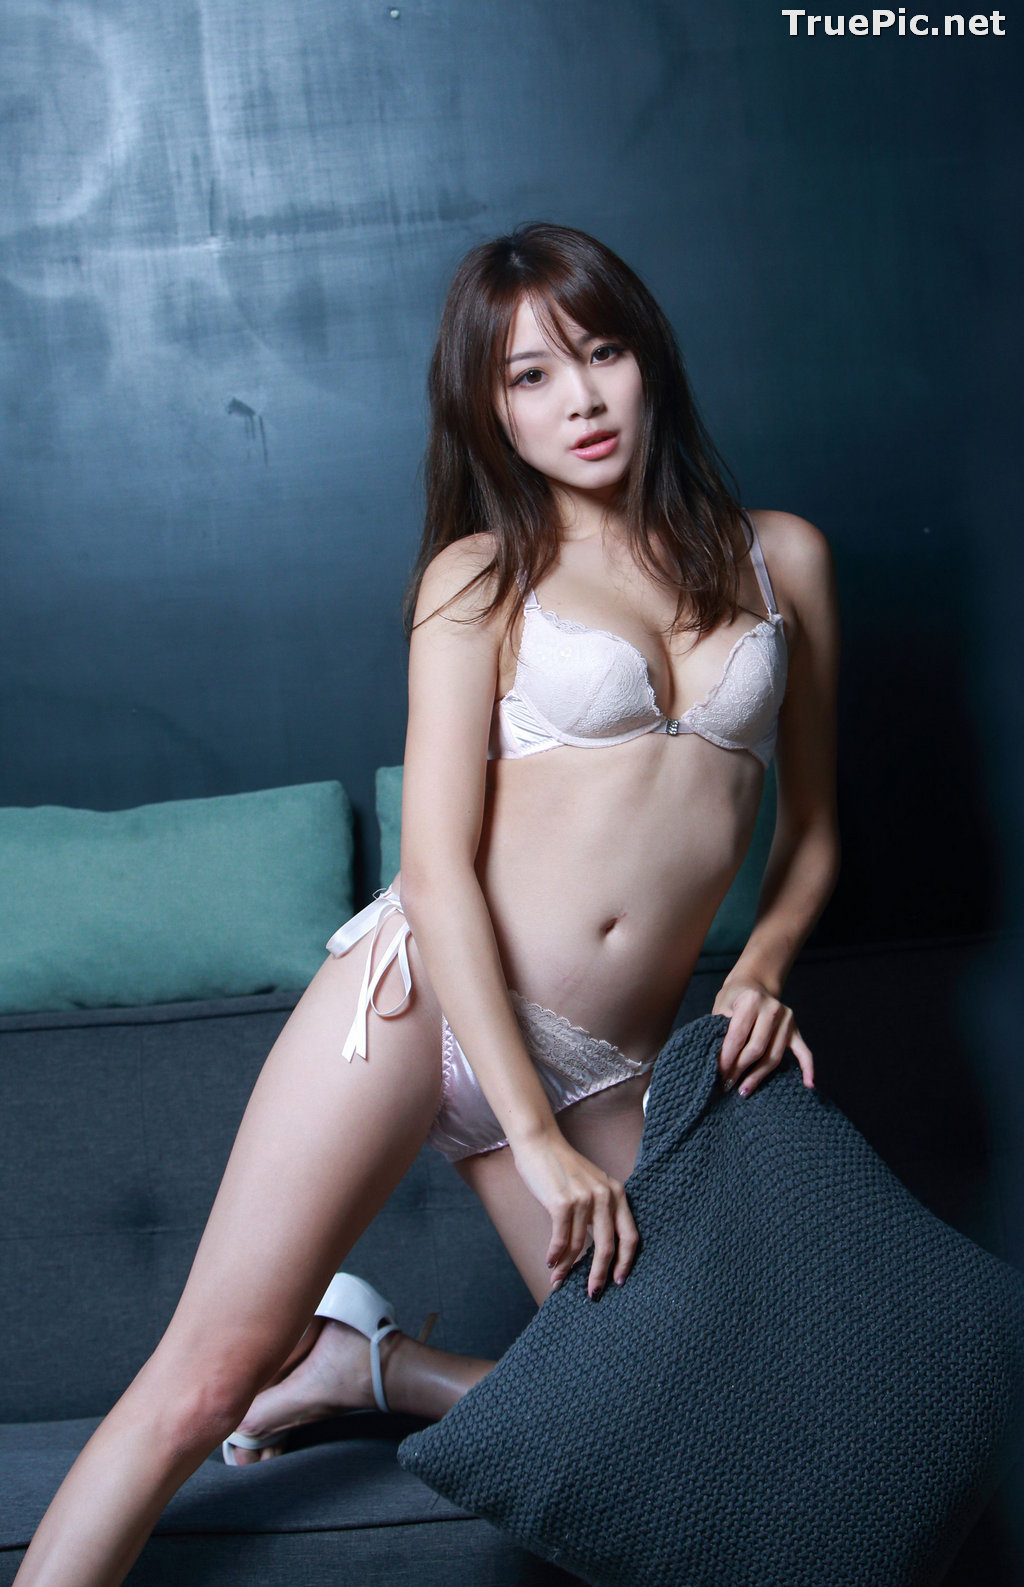 Image Taiwanese Model - Ash Ley - Sexy Girl and White Lingerie - TruePic.net - Picture-10